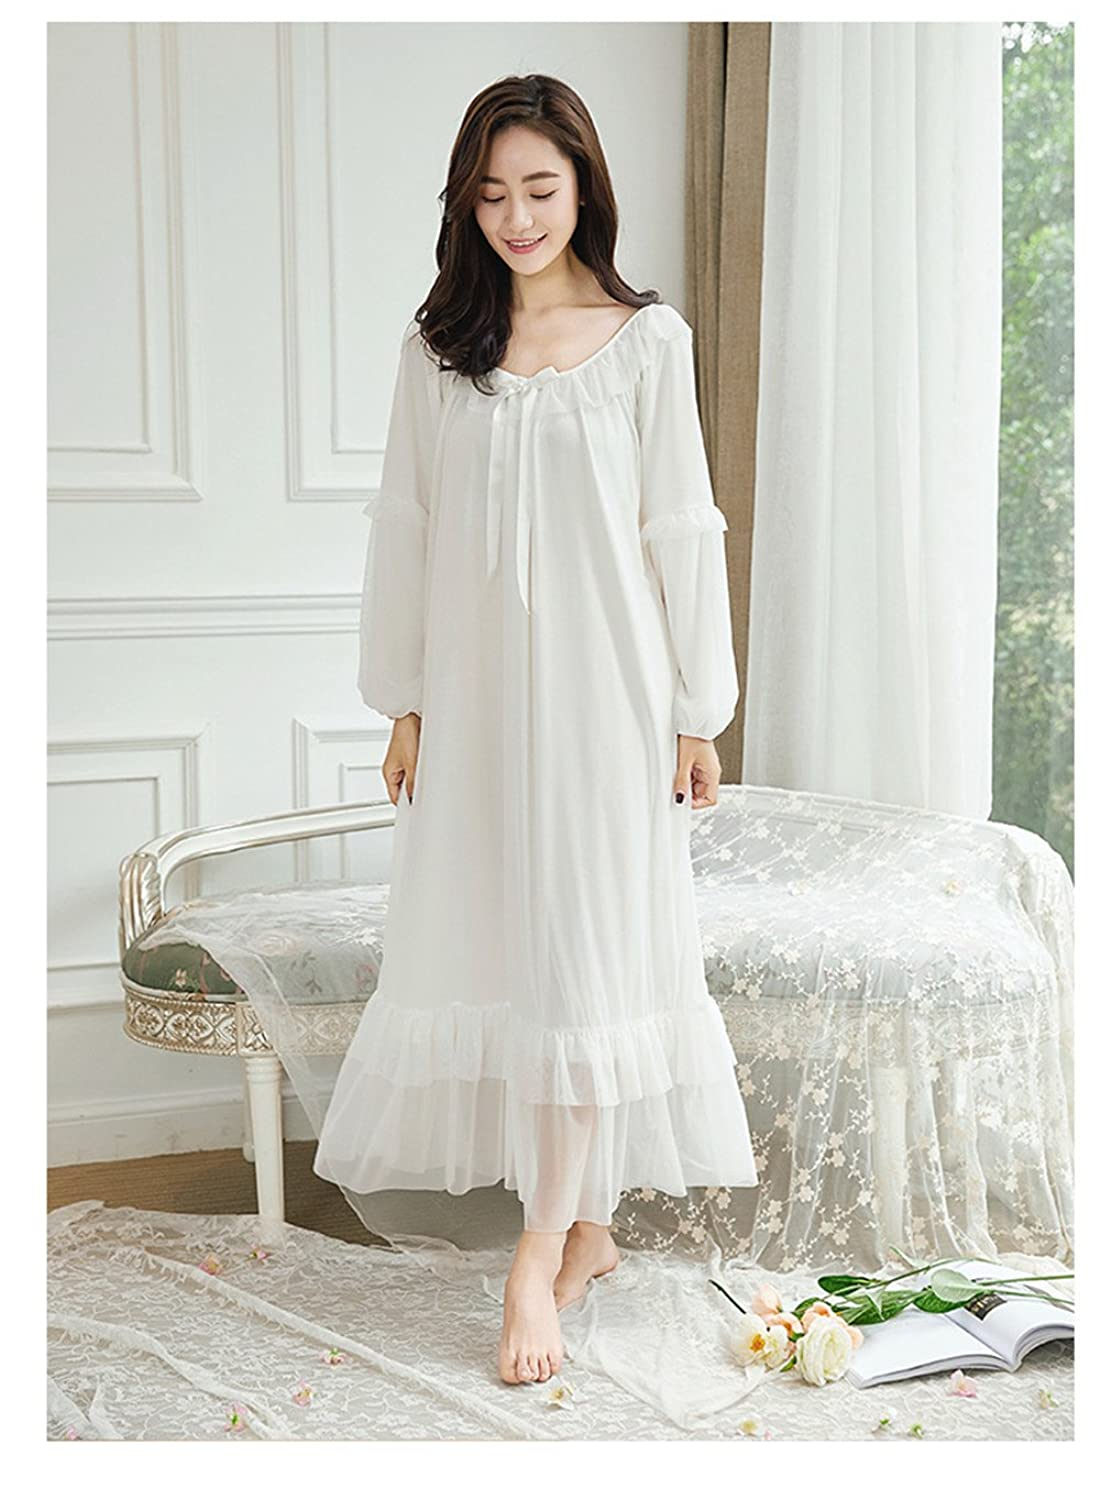 Victorian Nightgowns, Nightdress, Pajamas, Robes Asherbaby Womens Long Sleeve Vintage Nightgown Victorian Sleepwear Lounge Dress $35.99 AT vintagedancer.com